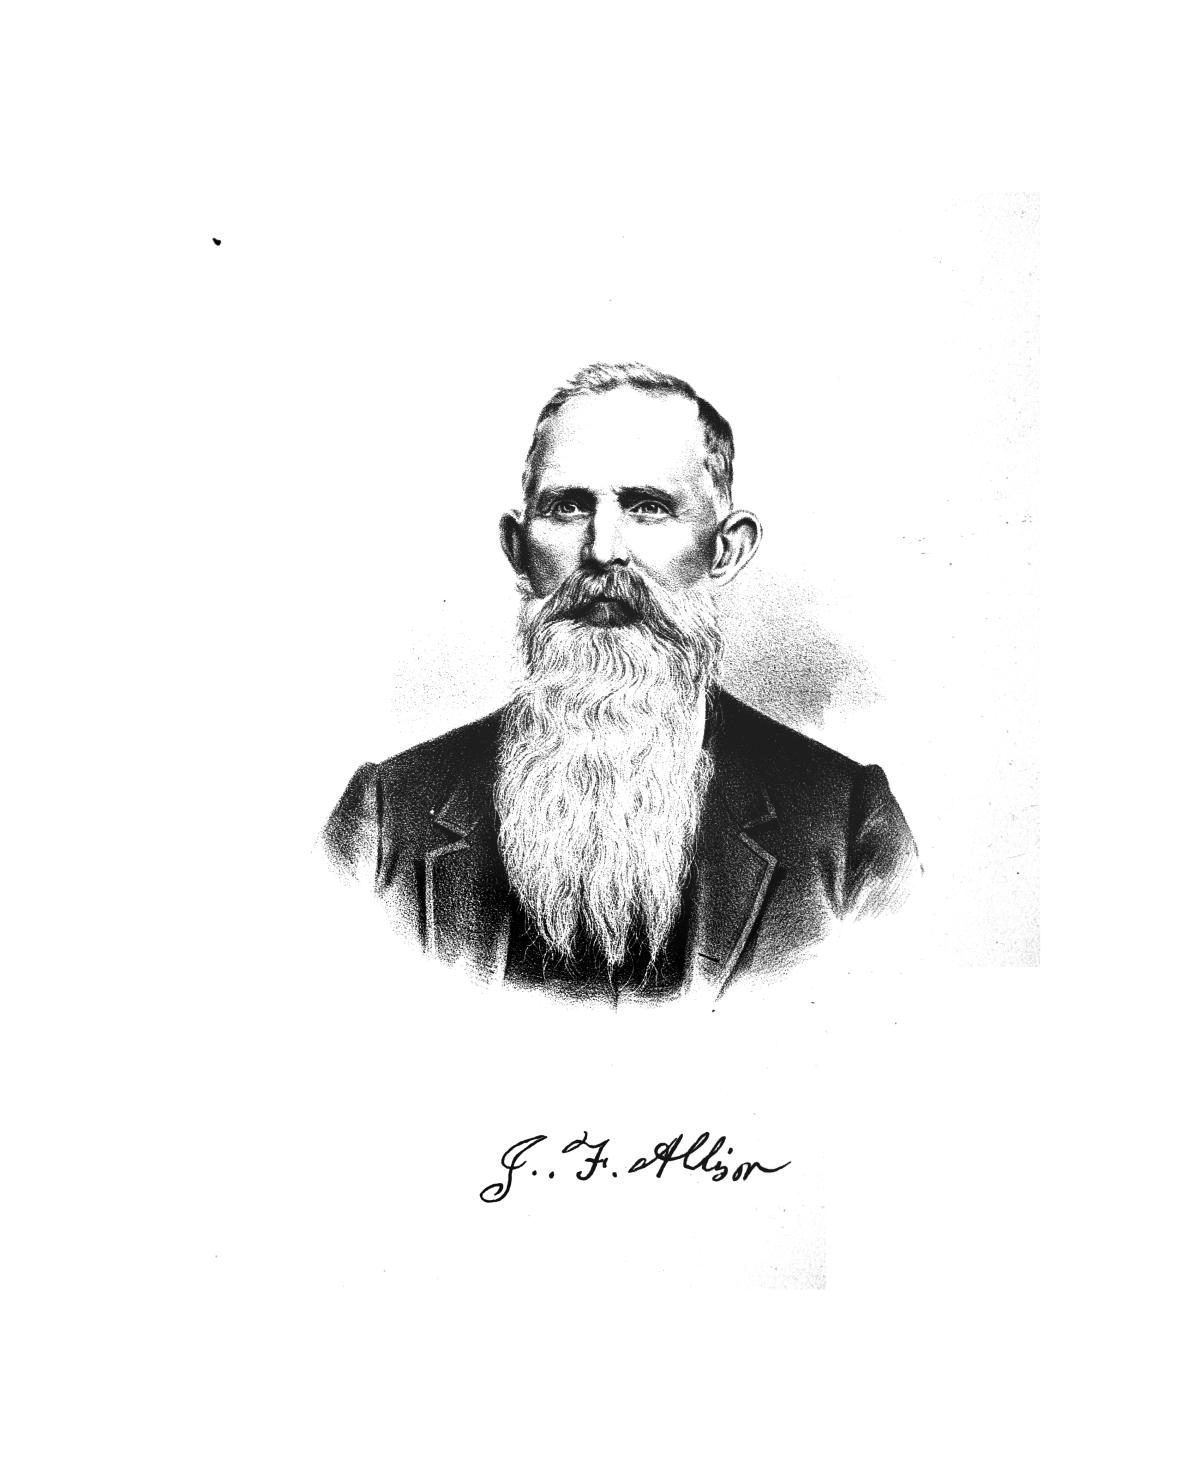 History of Texas, together with a biographical history of Milam, Williamson, Bastrop, Travis, Lee and Burleson counties : containing a concise history of the state, with portraits and biographies of prominent citizens of the above named counties, and personal histories of many of the early settlers and leading families                                                                                                      None